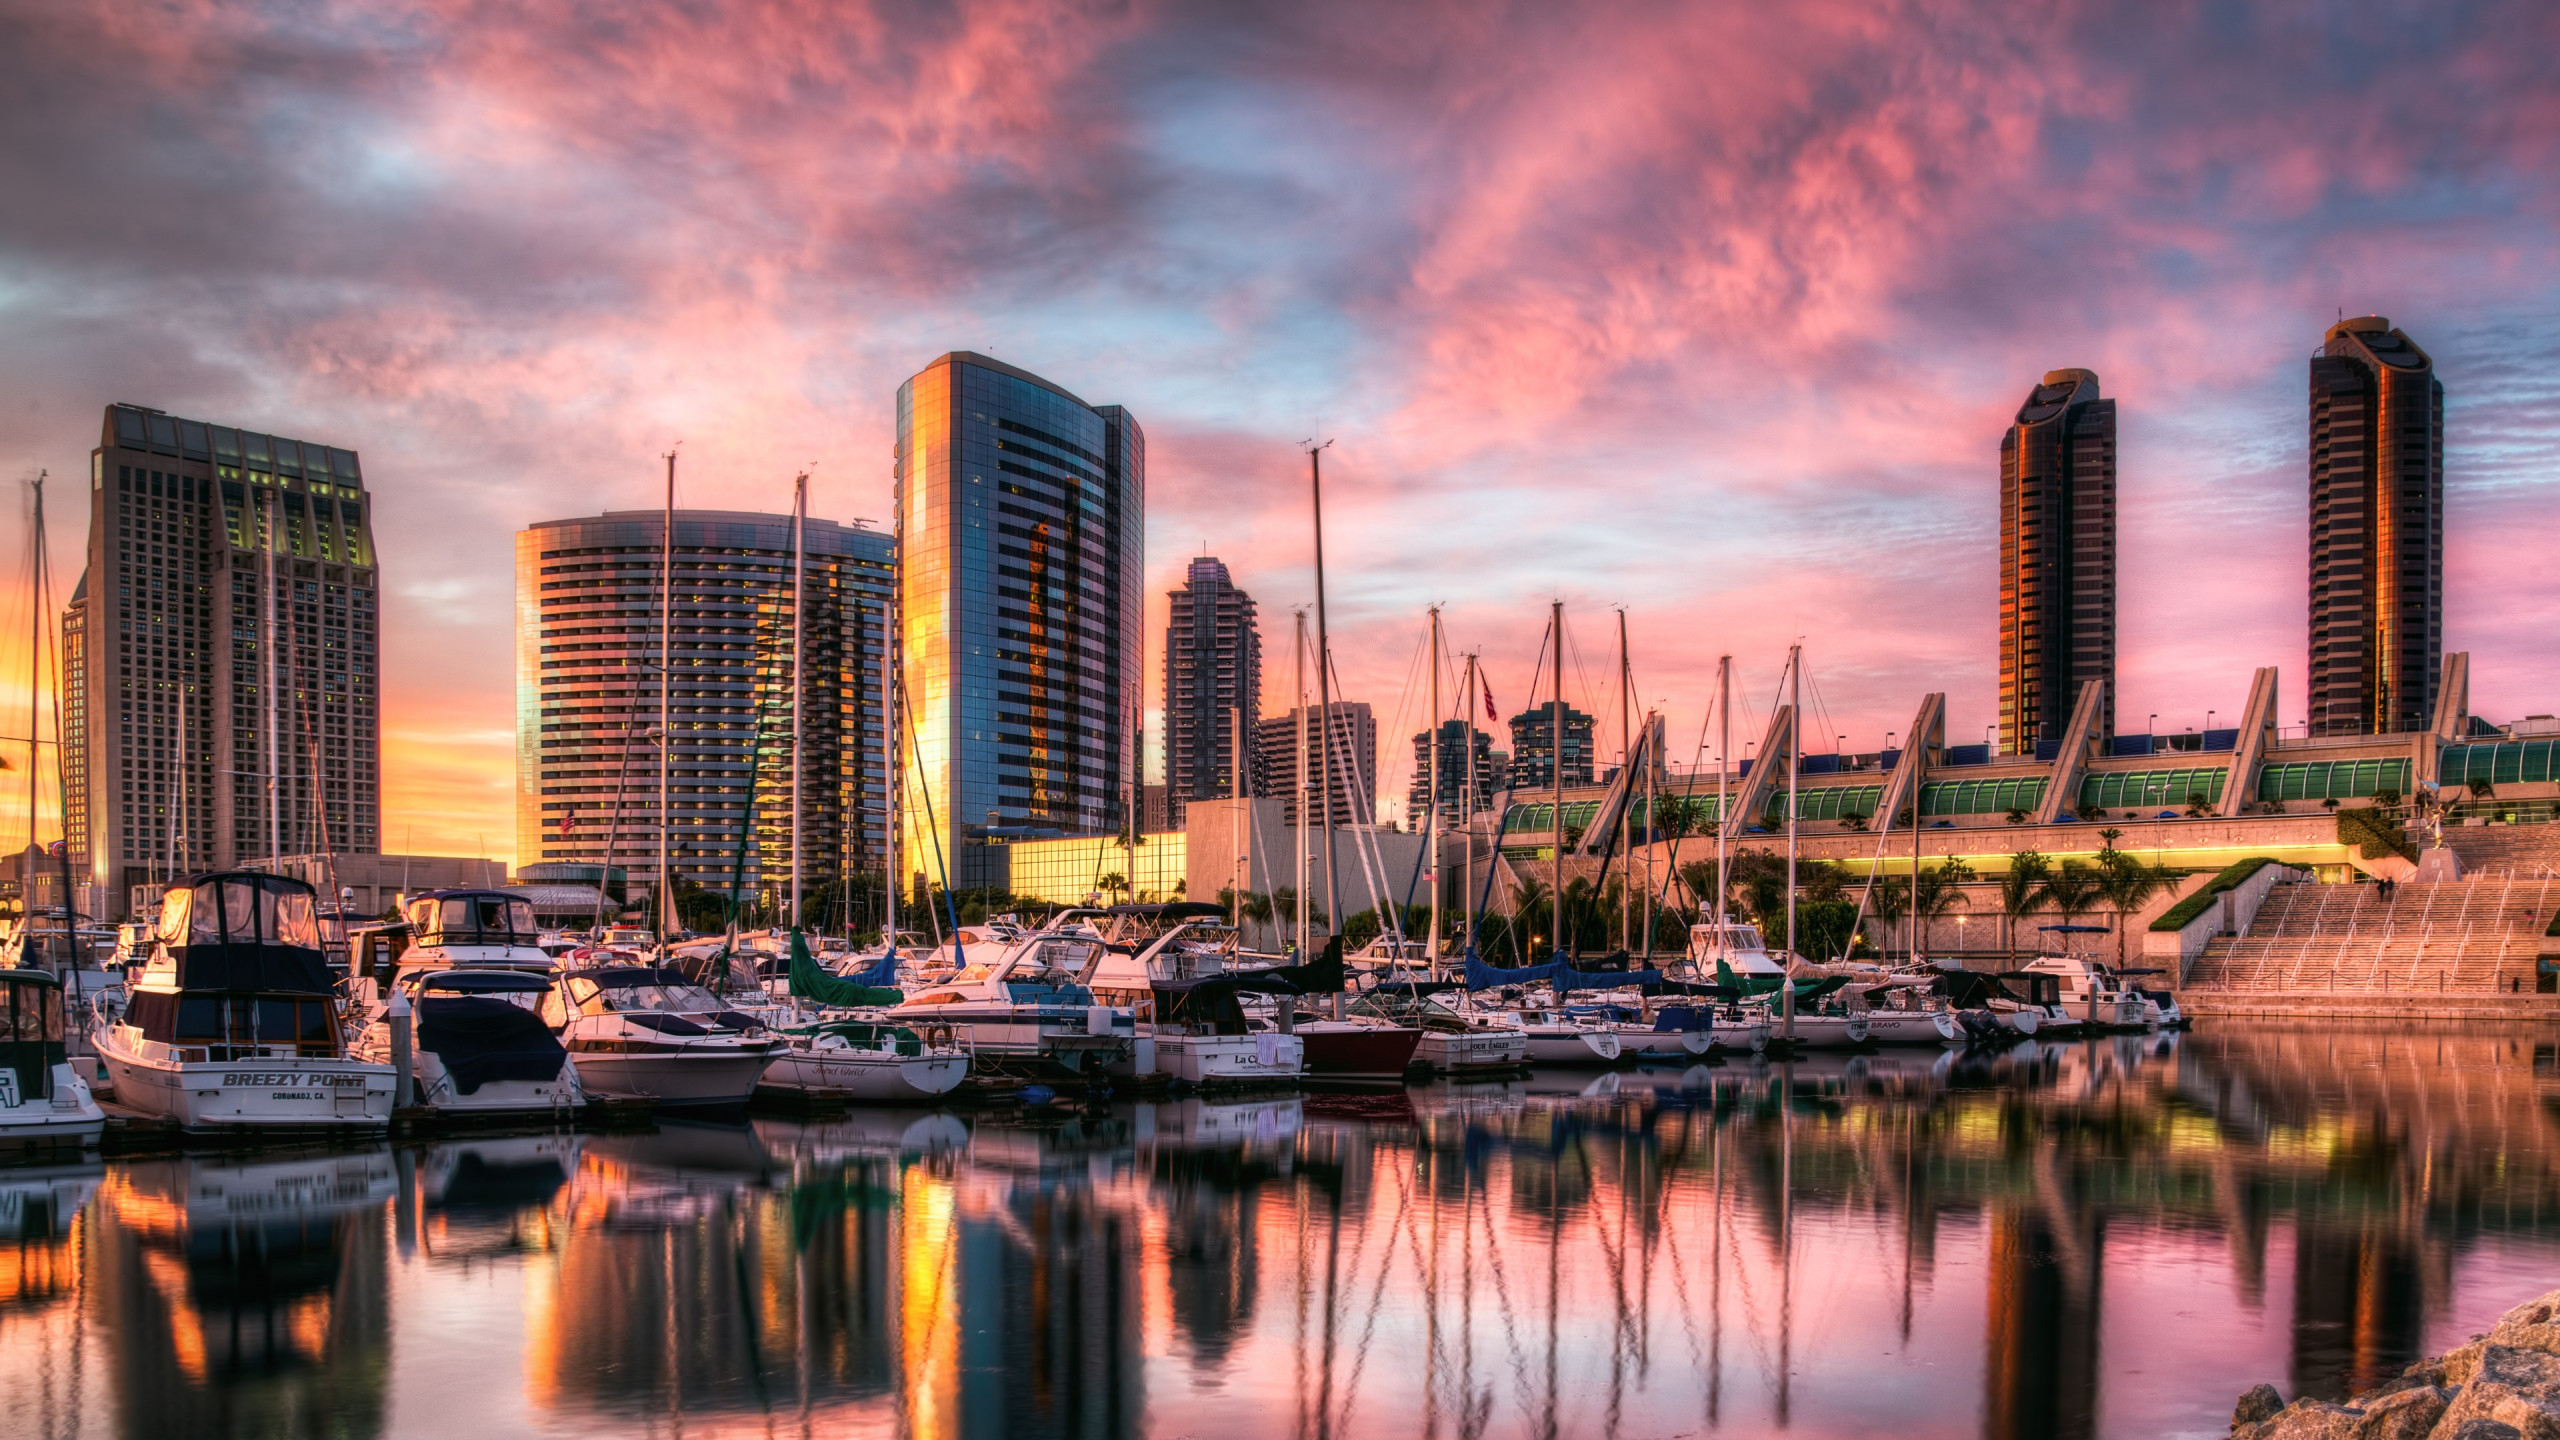 Sunset in San Diego harbor wallpaper 2560x1440